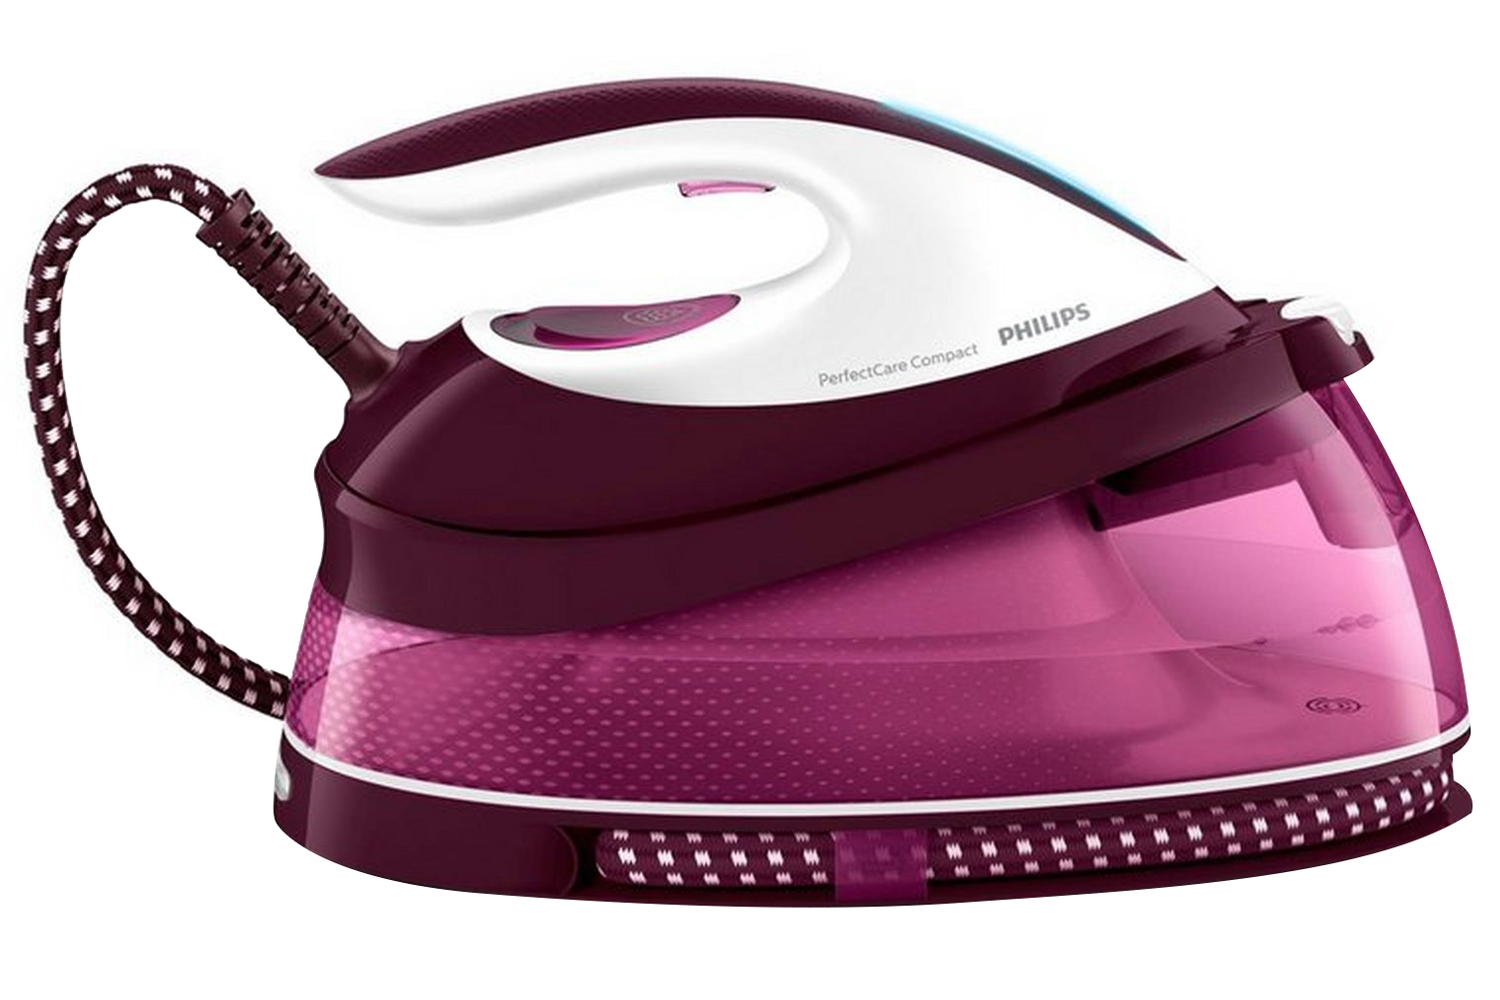 Kitchen & Home Collectibles Purple Handheld Mini Electric Steam Iron Surge Steam For Home And Travelling Perfect In Workmanship